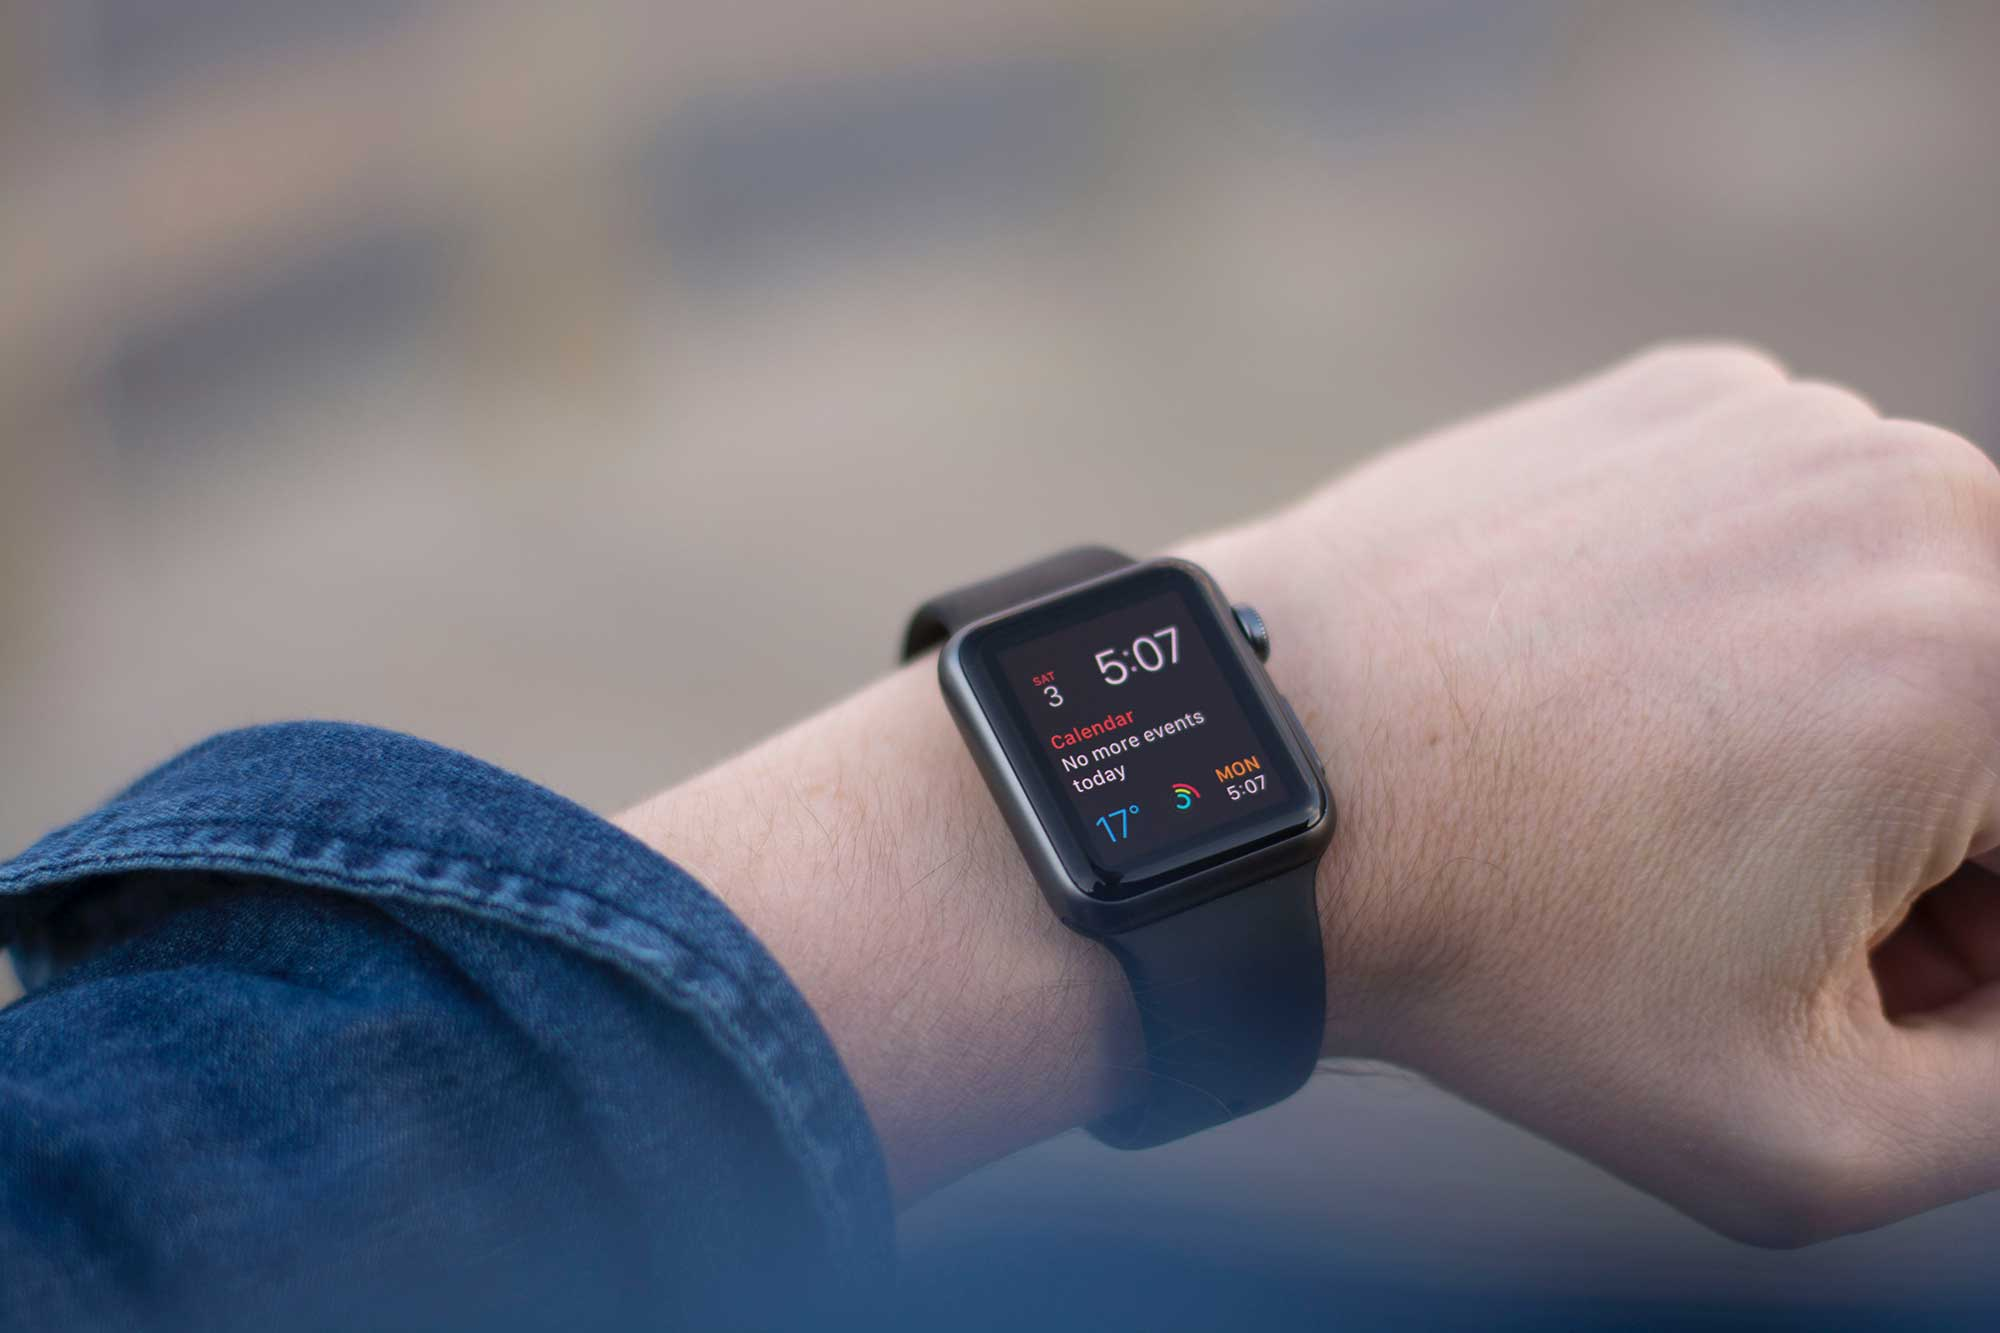 Person's arm wearing a smart watch